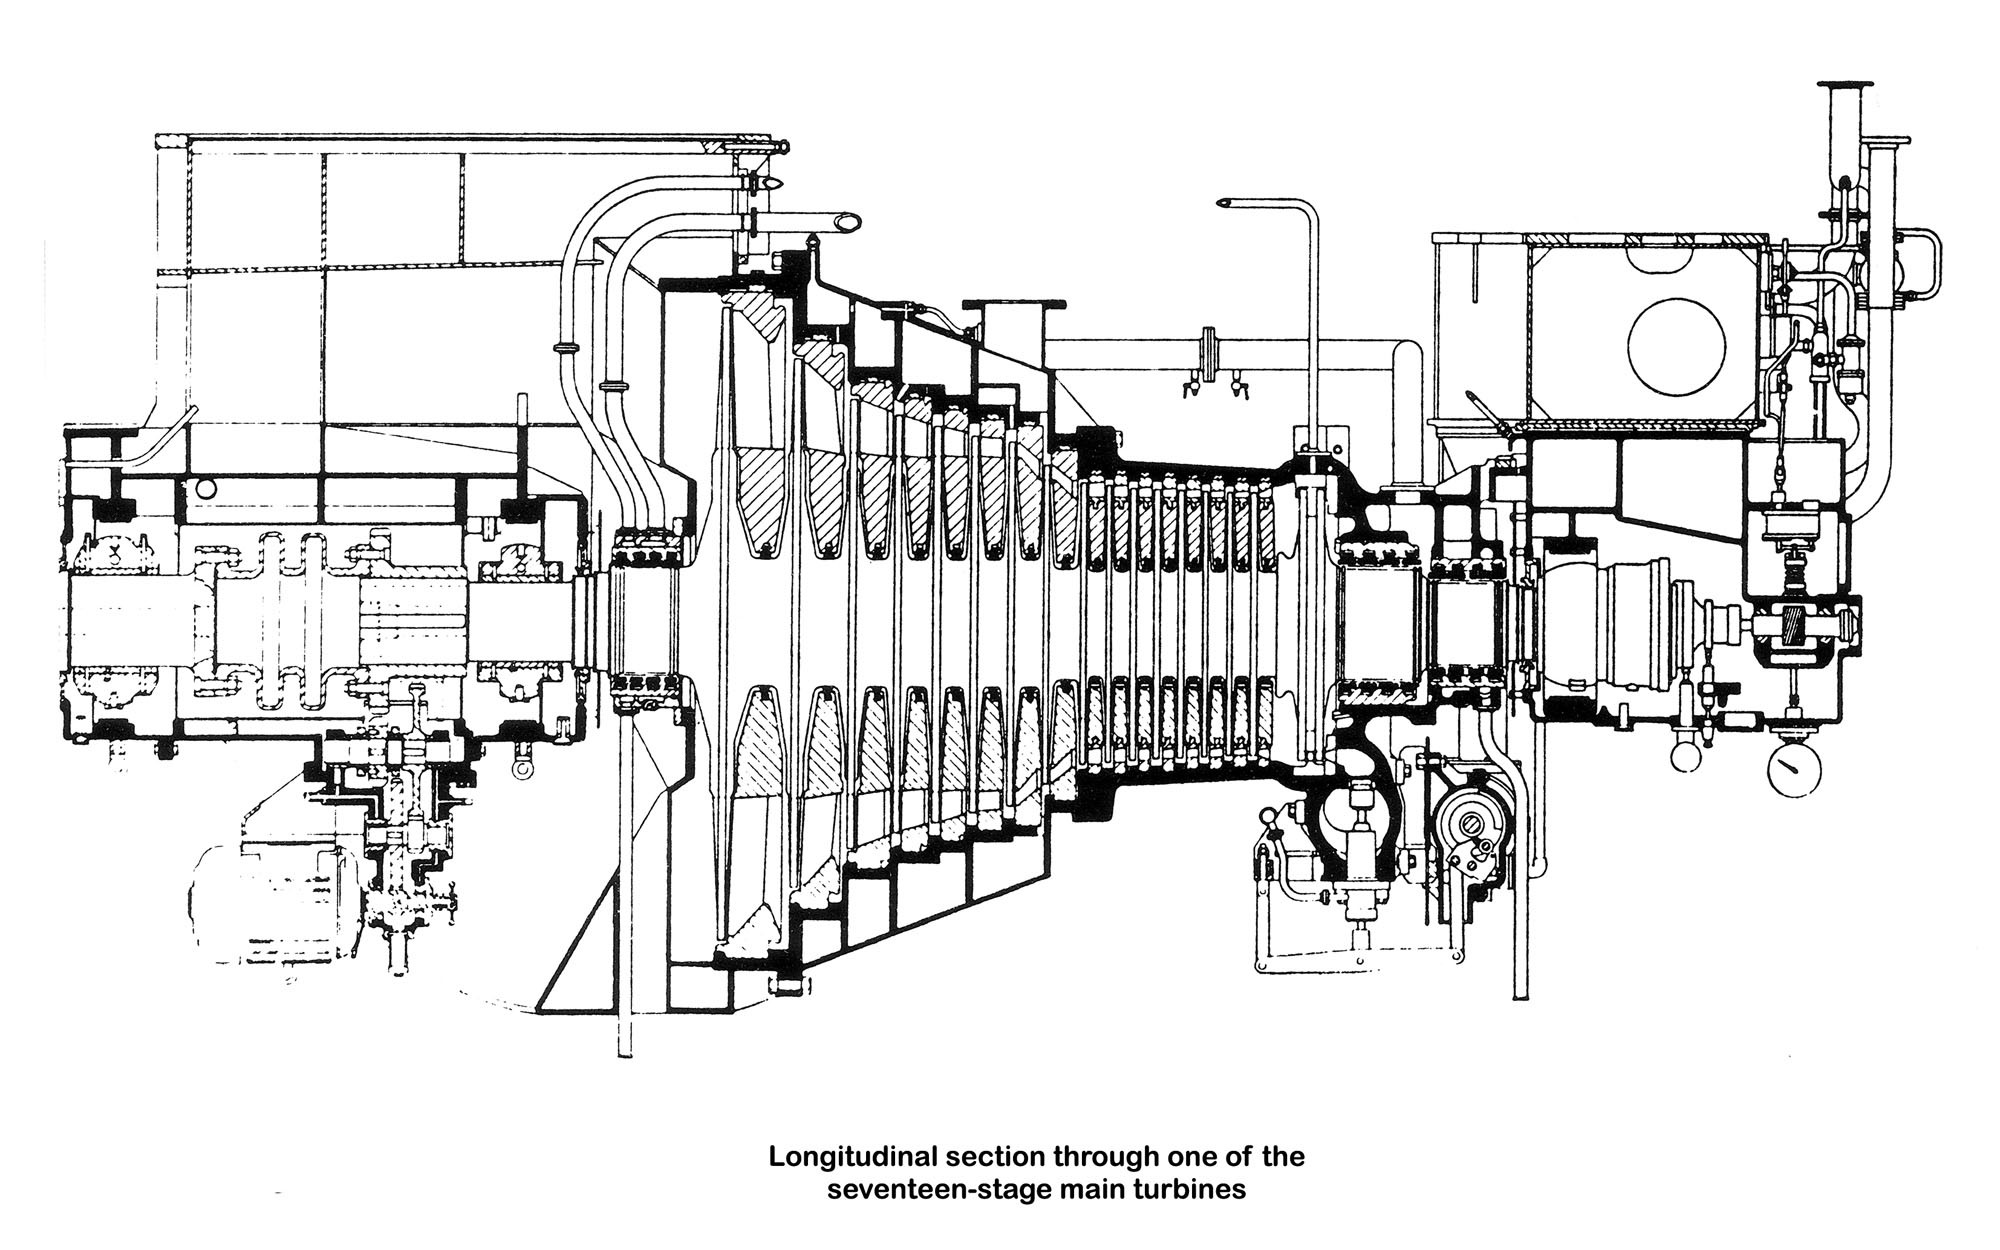 Longitudinal Section Through One Of The Seventeen-stage Main Turbines Diagram